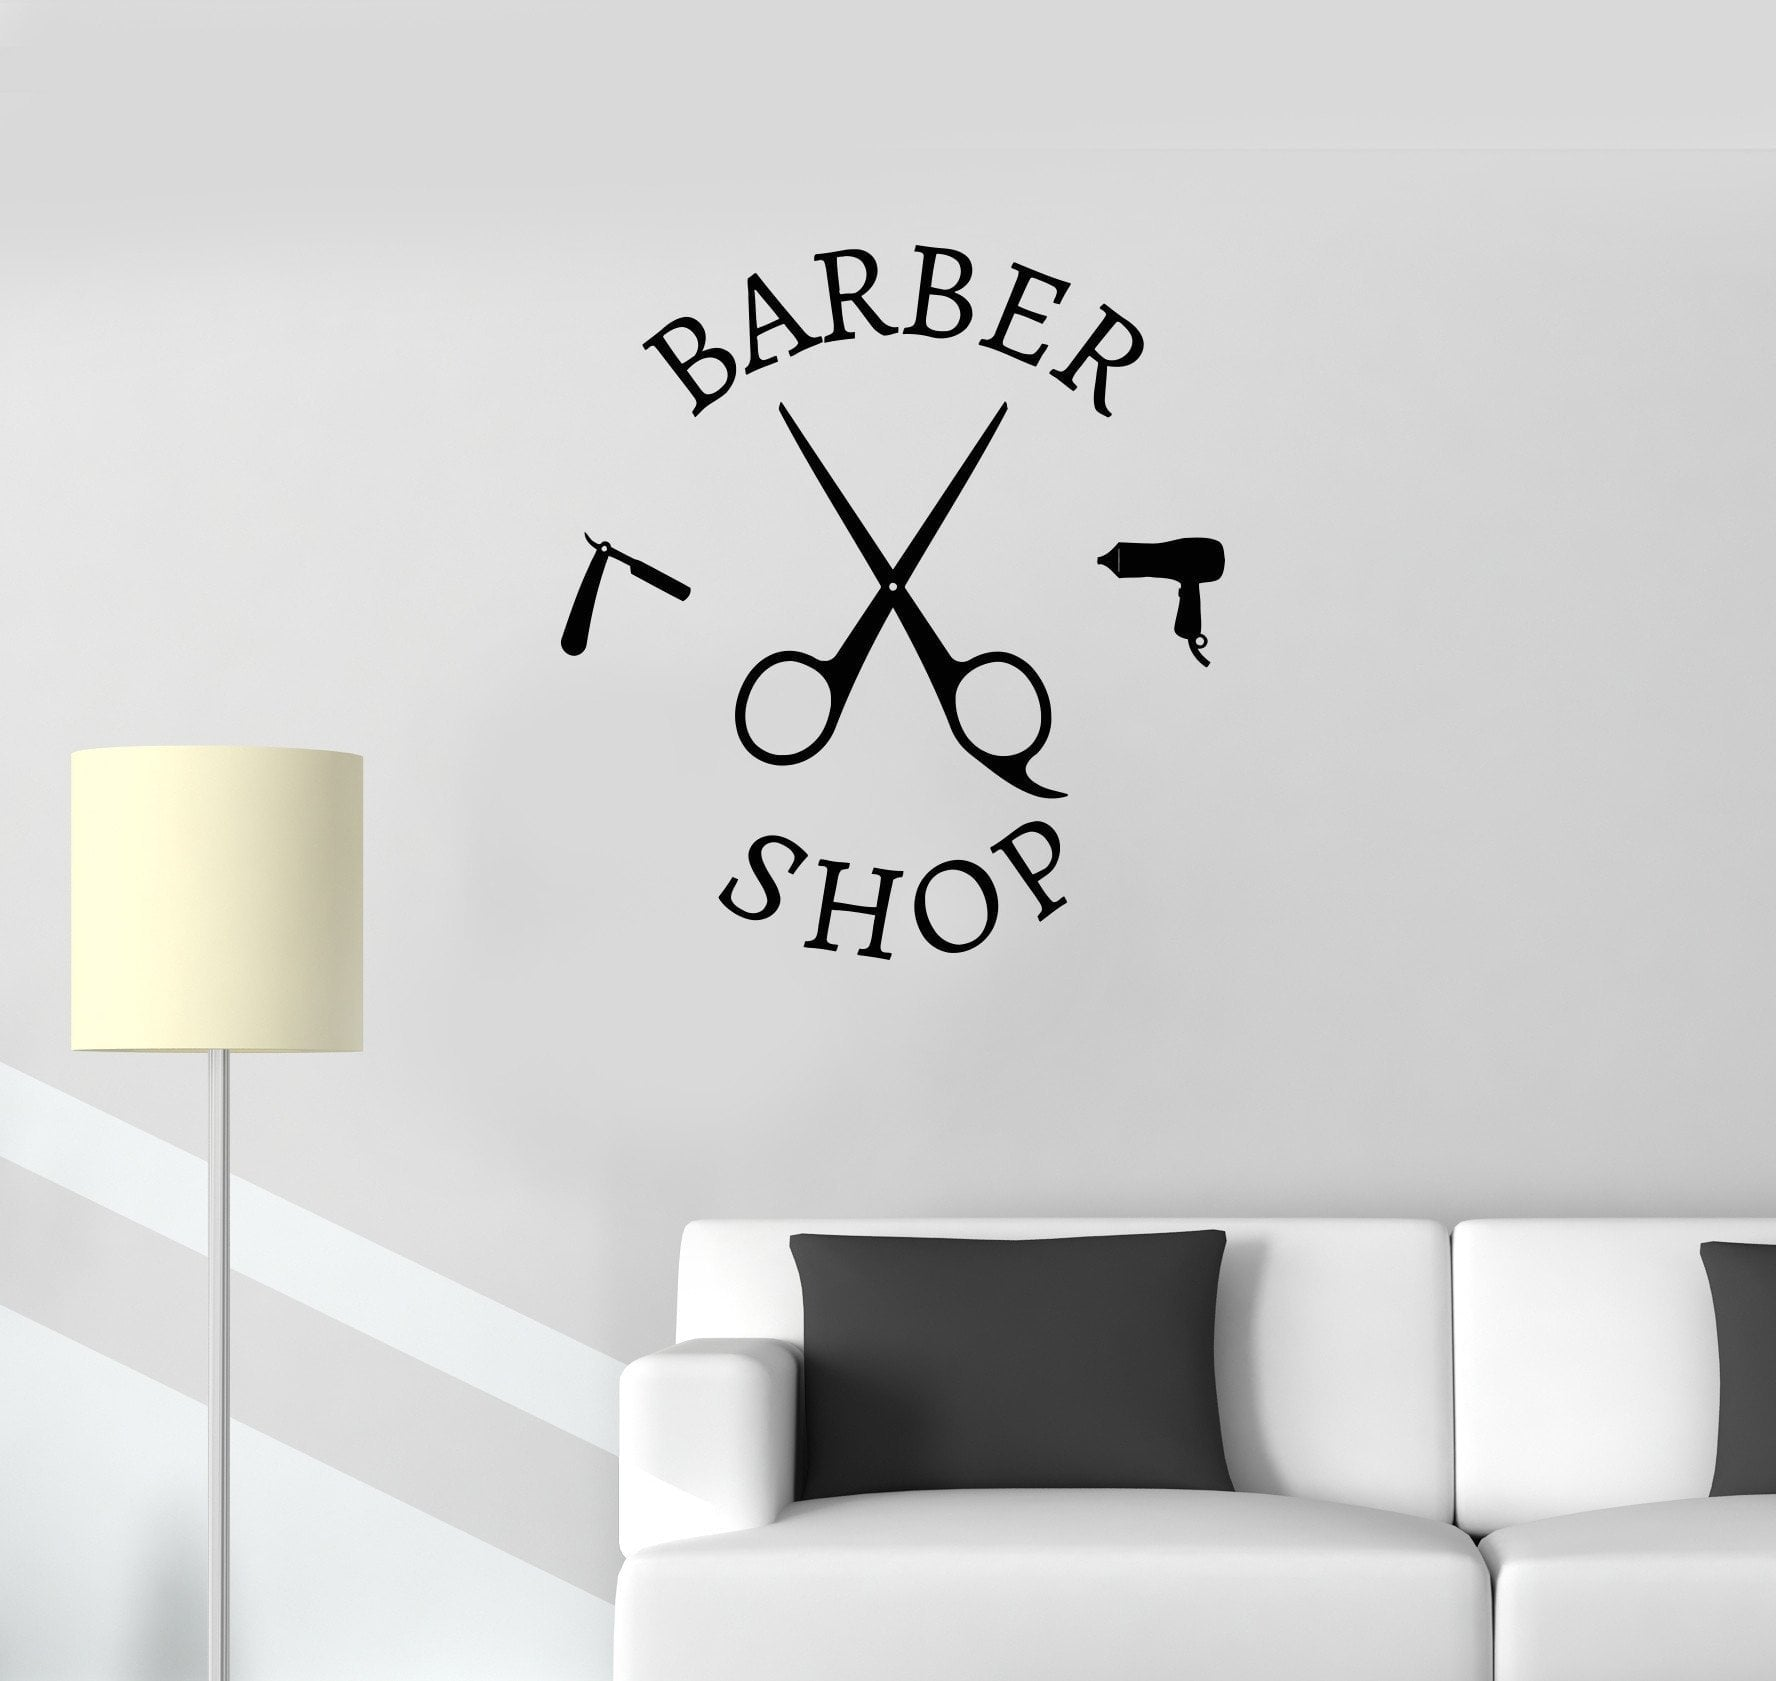 Vinyl Decal Barbershop Barber Tools Hair Beauty Hairdresser Wall Sticker Mural Unique Gift (ig2707)